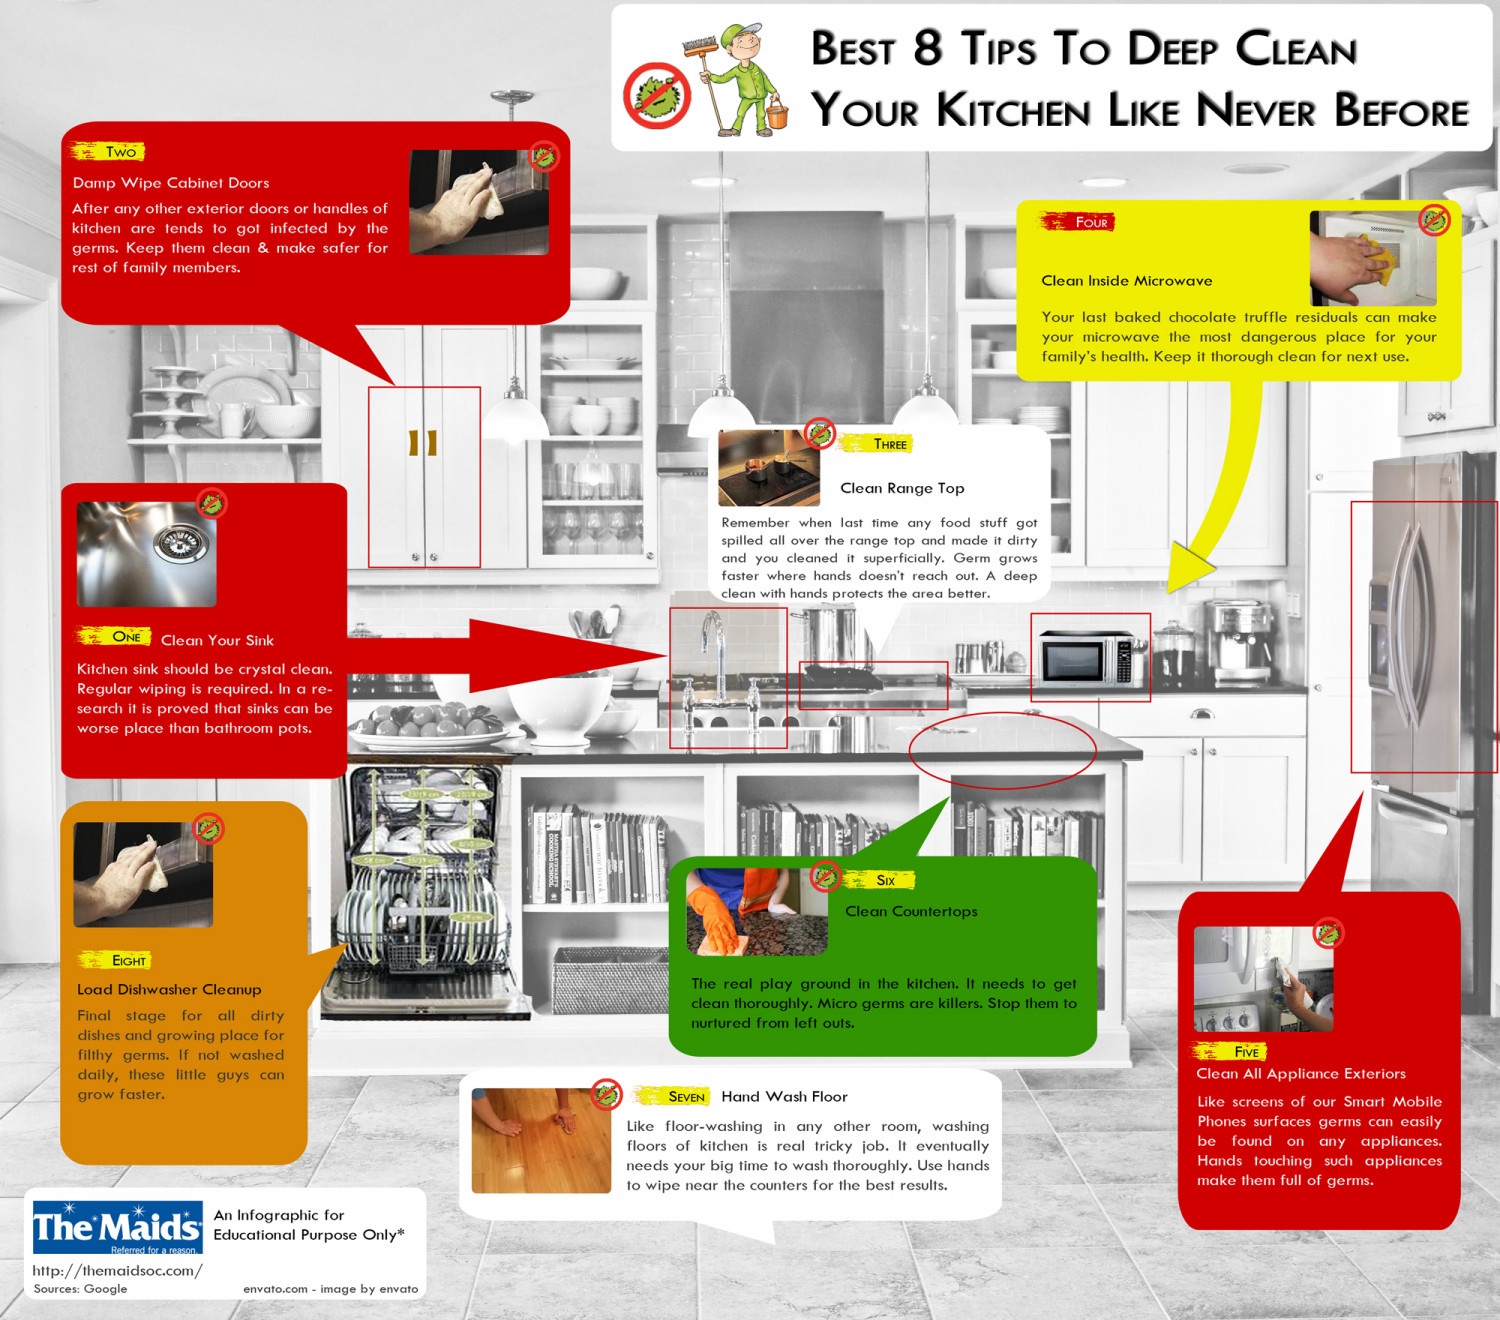 Best 8 Tips To Deep Clean Your Kitchen Like Never Before Infographic